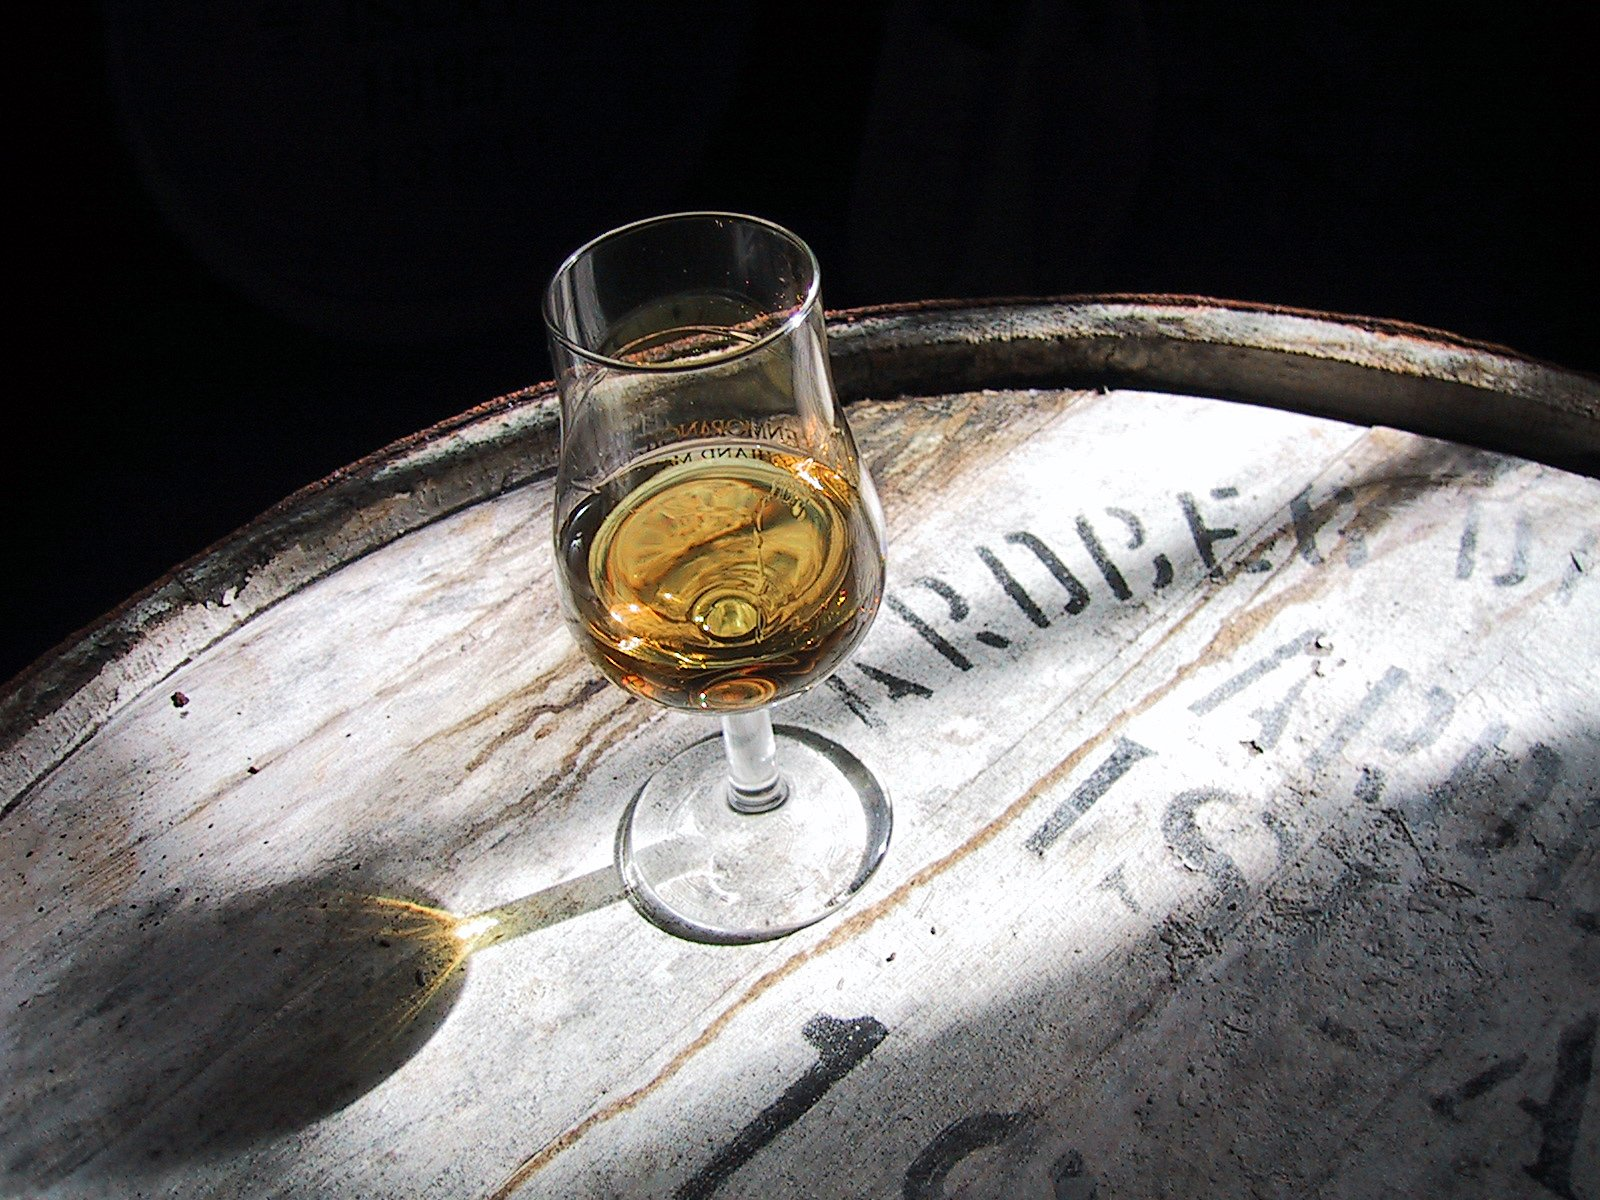 Do we use Whiskey or Whisky?